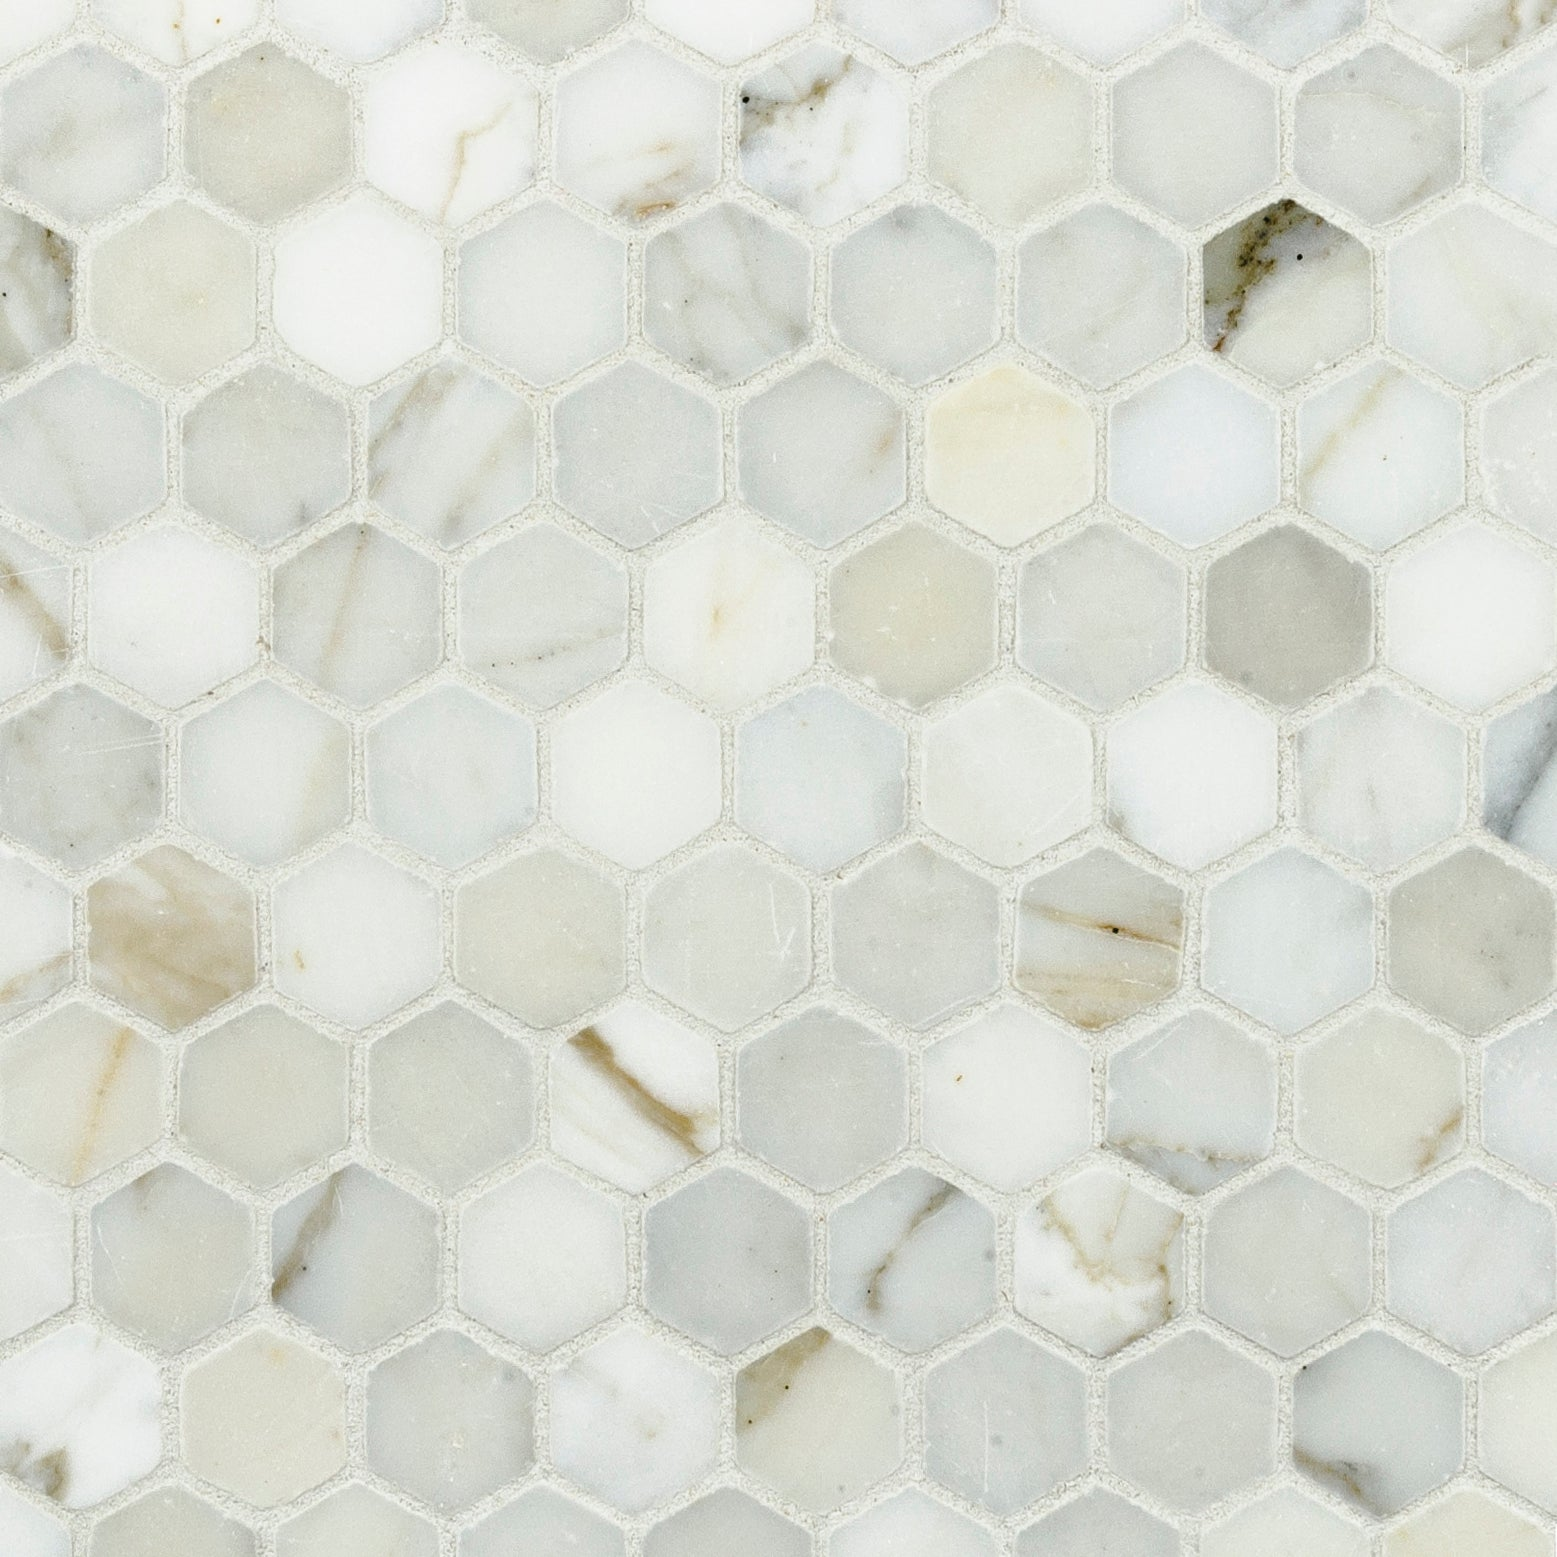 Mosaic Calacatta Gold Marble Swatch Card  Polished Samples Hexagon 3.0cm product photo